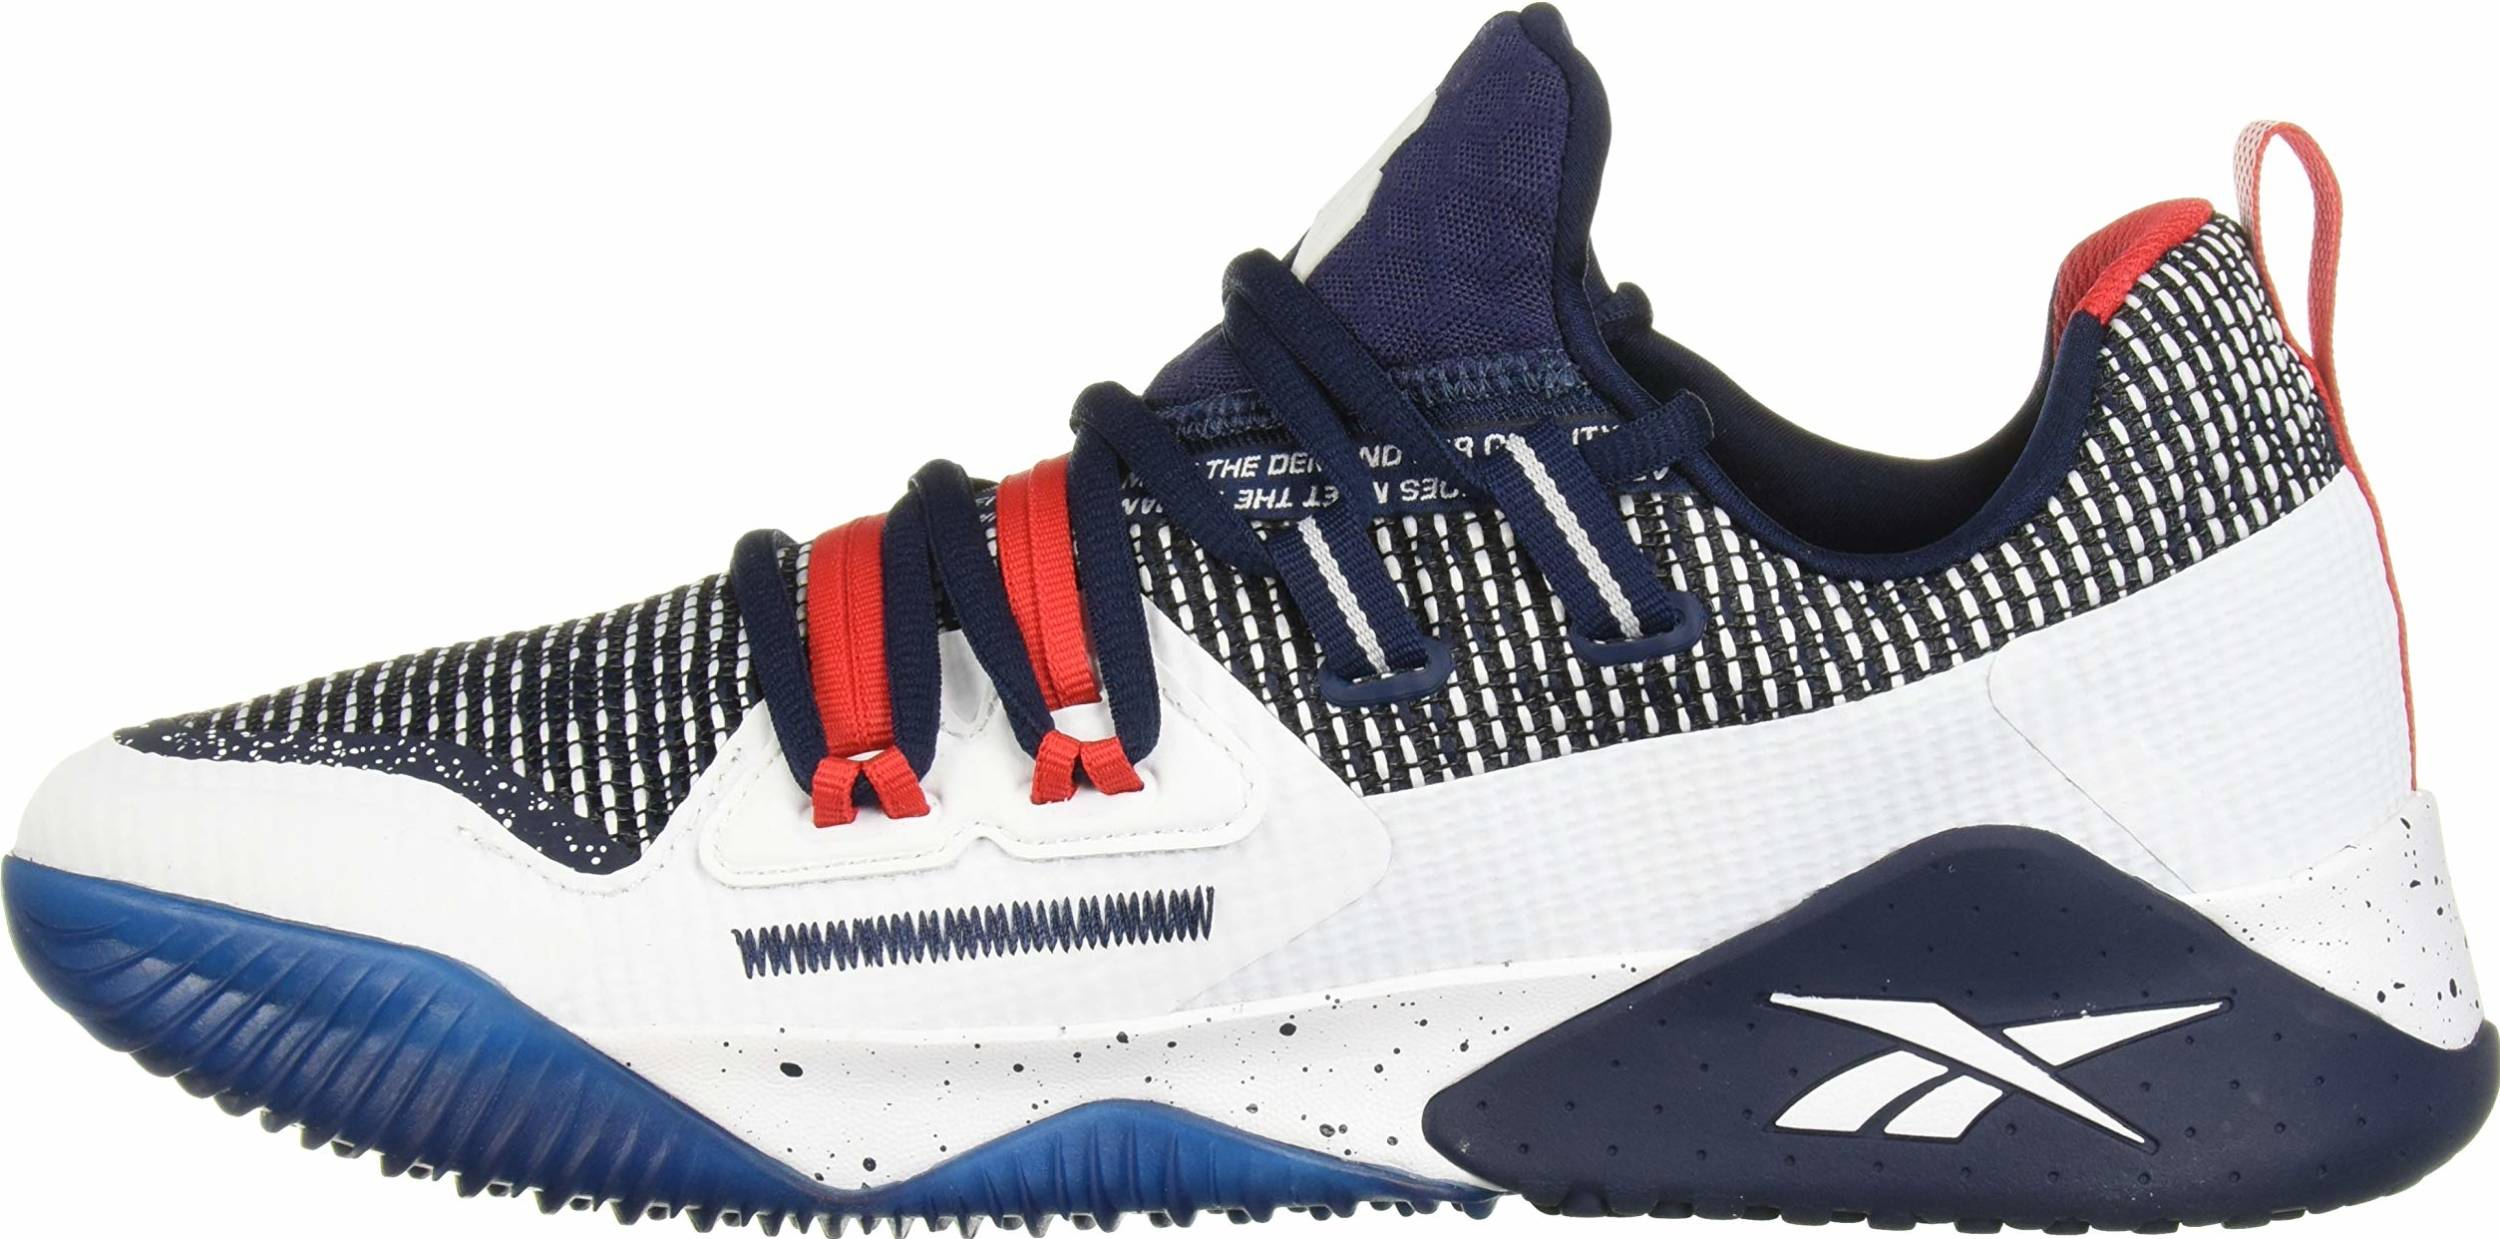 Only $71 + Review of Reebok JJ III